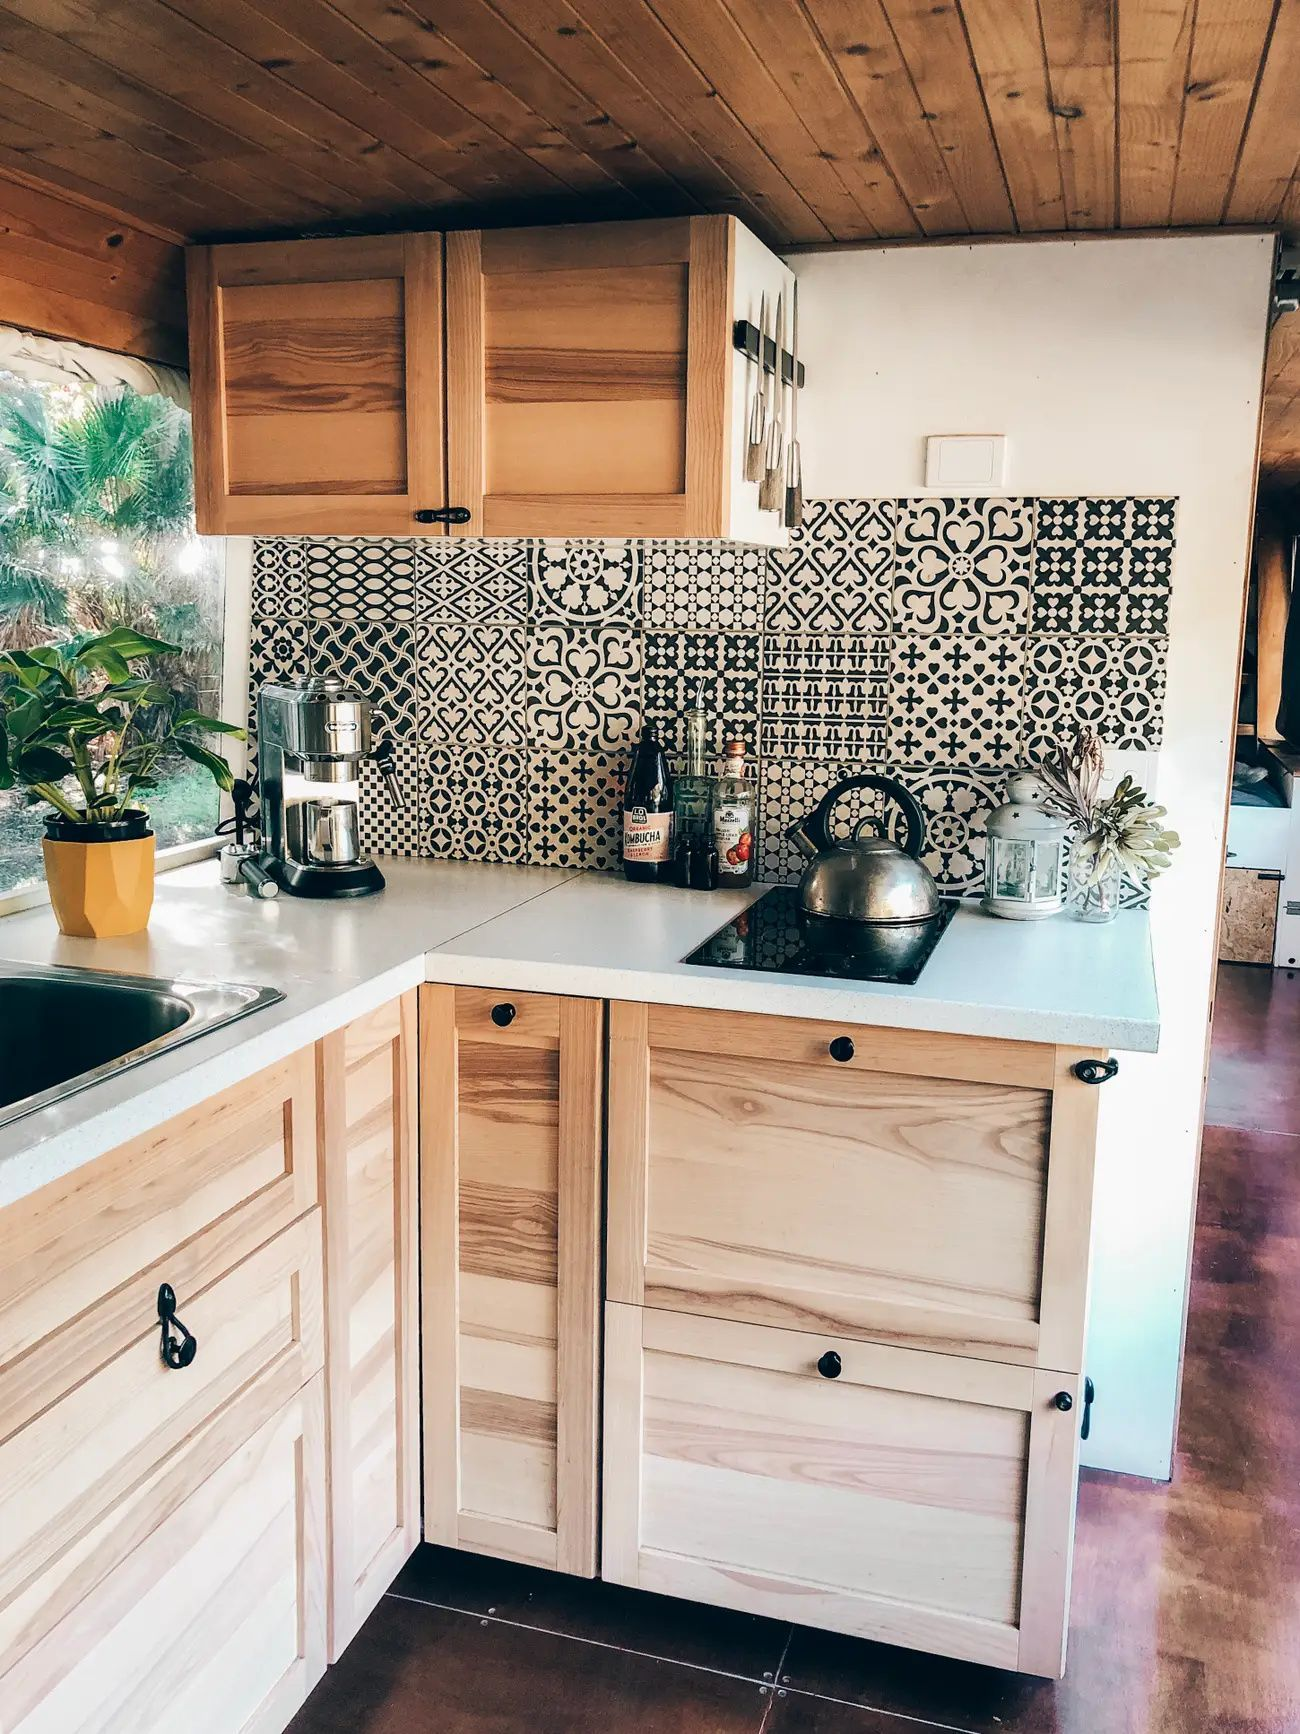 50 Photos Of Beautiful Tiny Homes That Will Make You Want To Downsize In 2020 Tiny House Kitchen Tiny Kitchen Home Kitchens